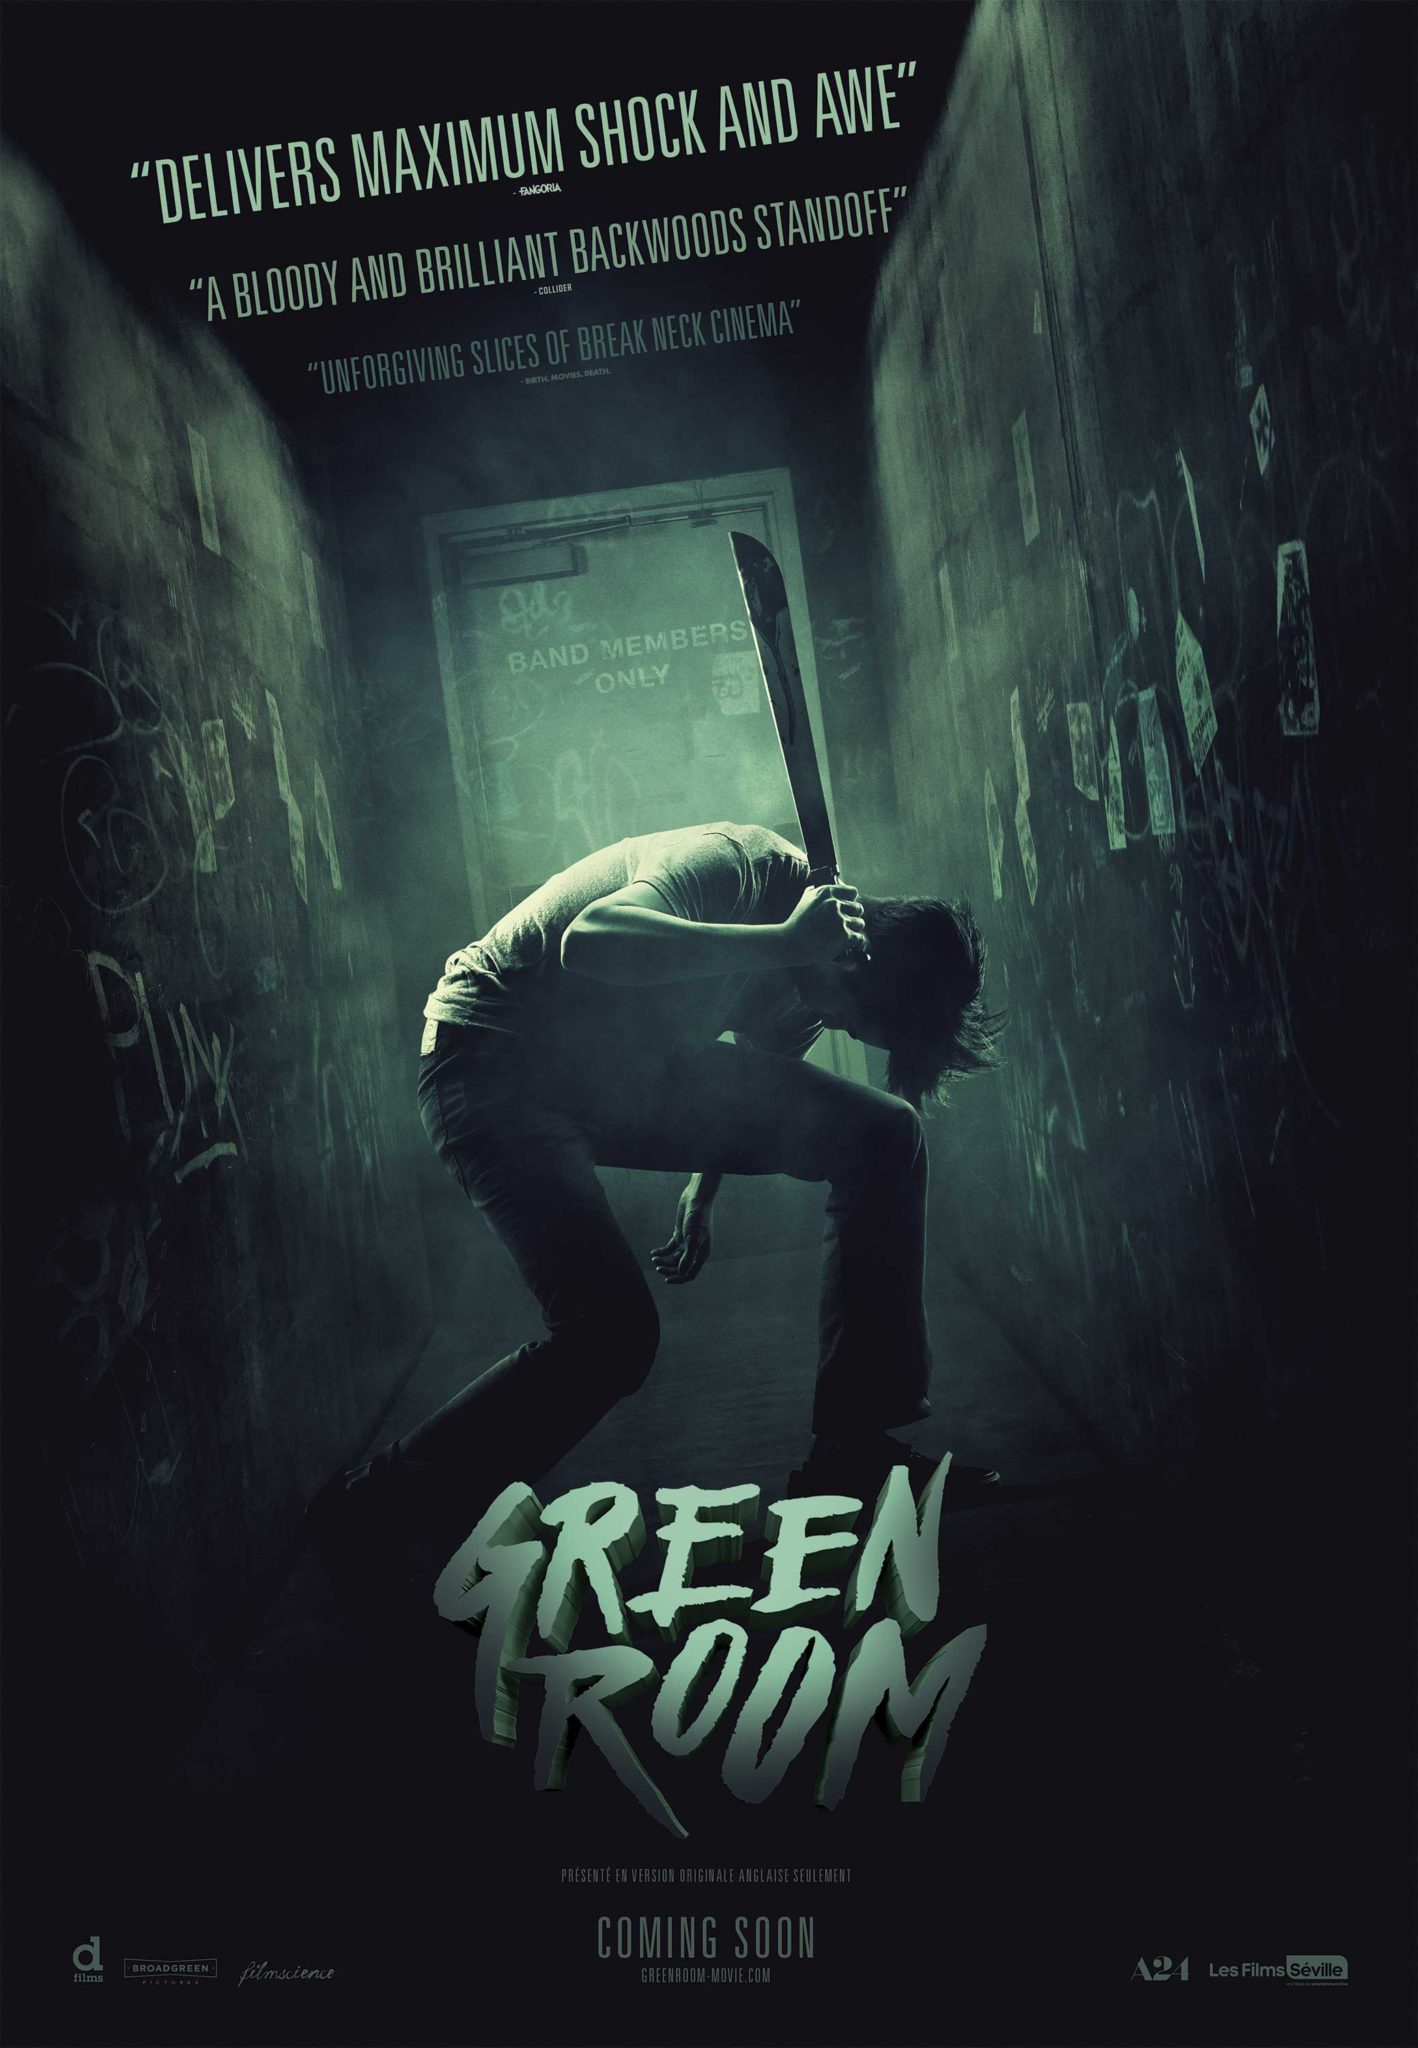 Green-Room-Poster-27X39-LR-no-marks